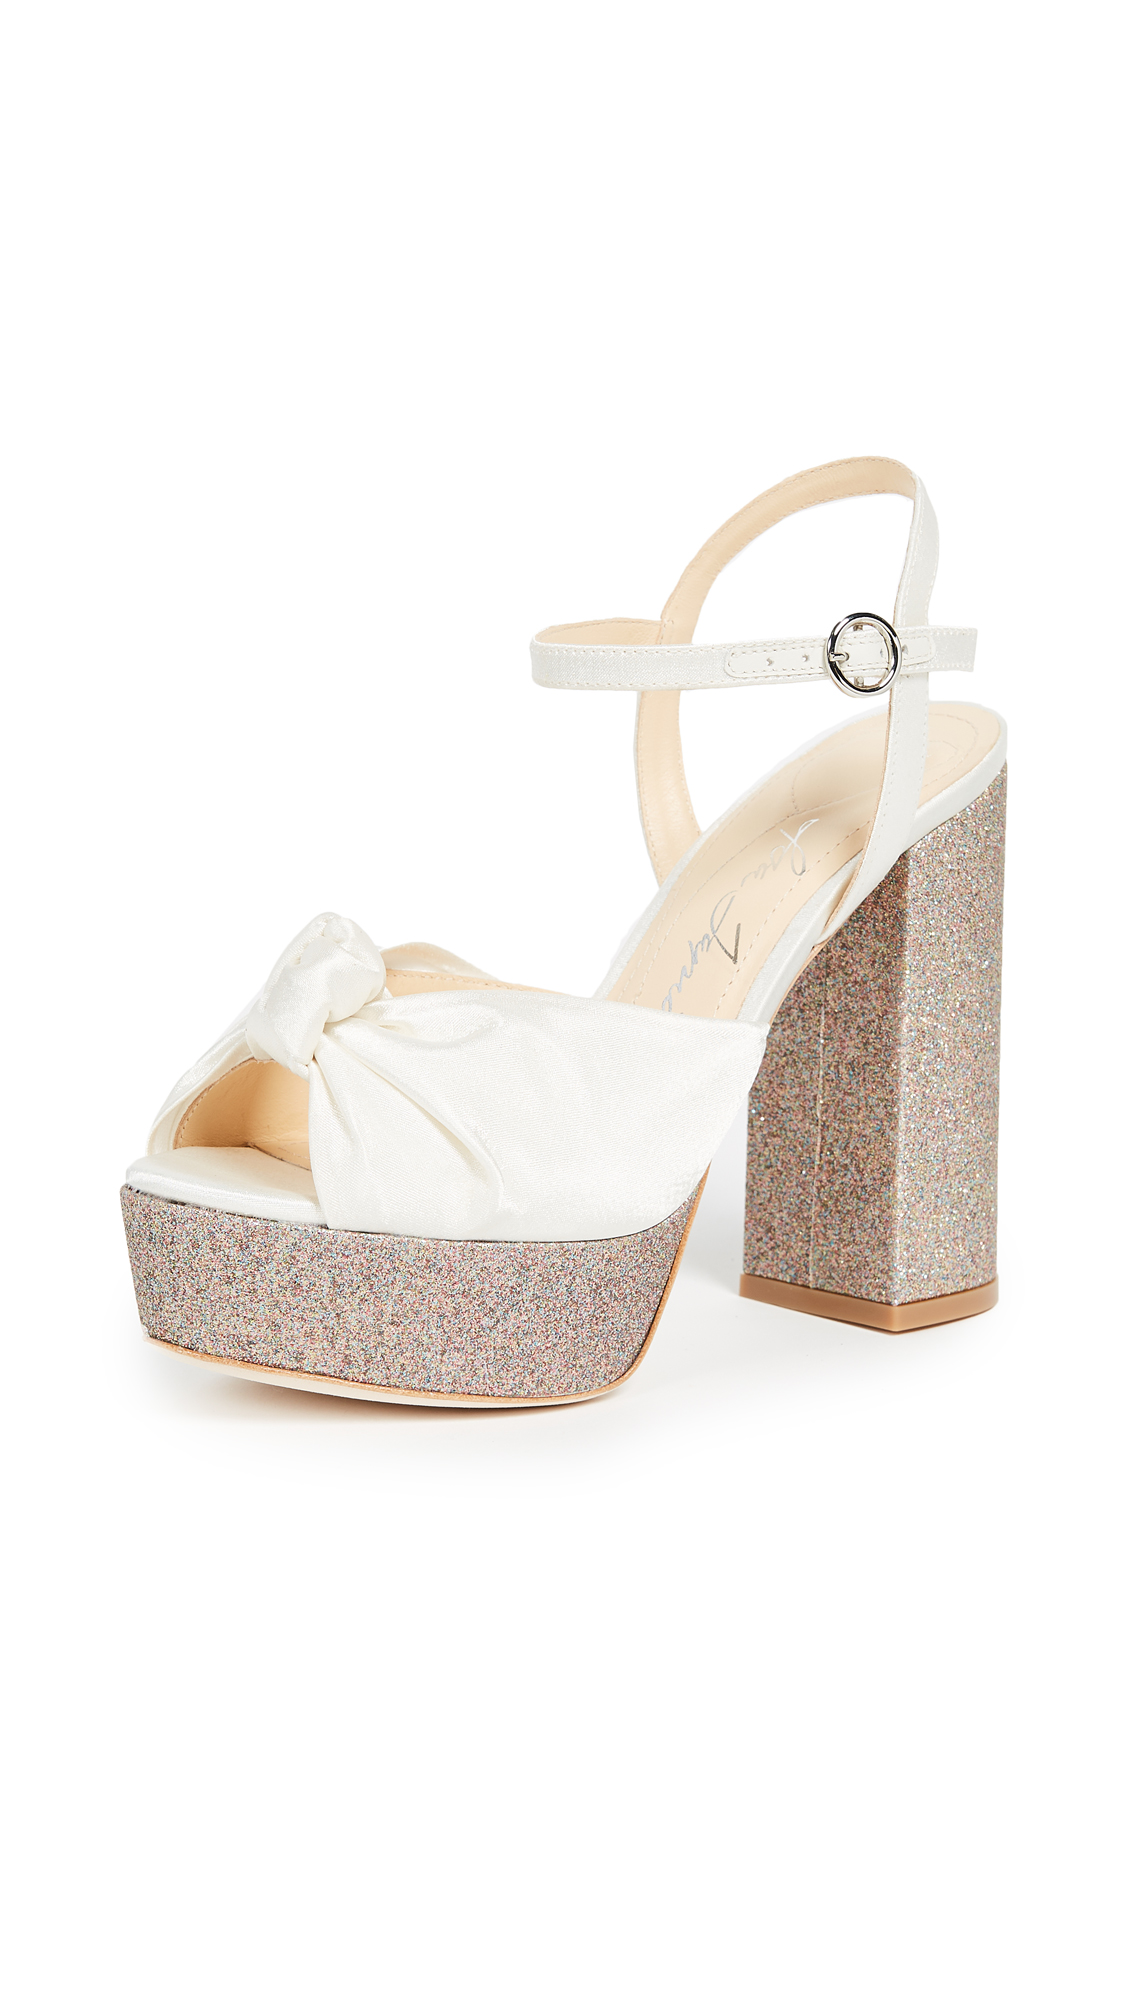 Isa Tapia Cheer Platform Sandals - Ivory